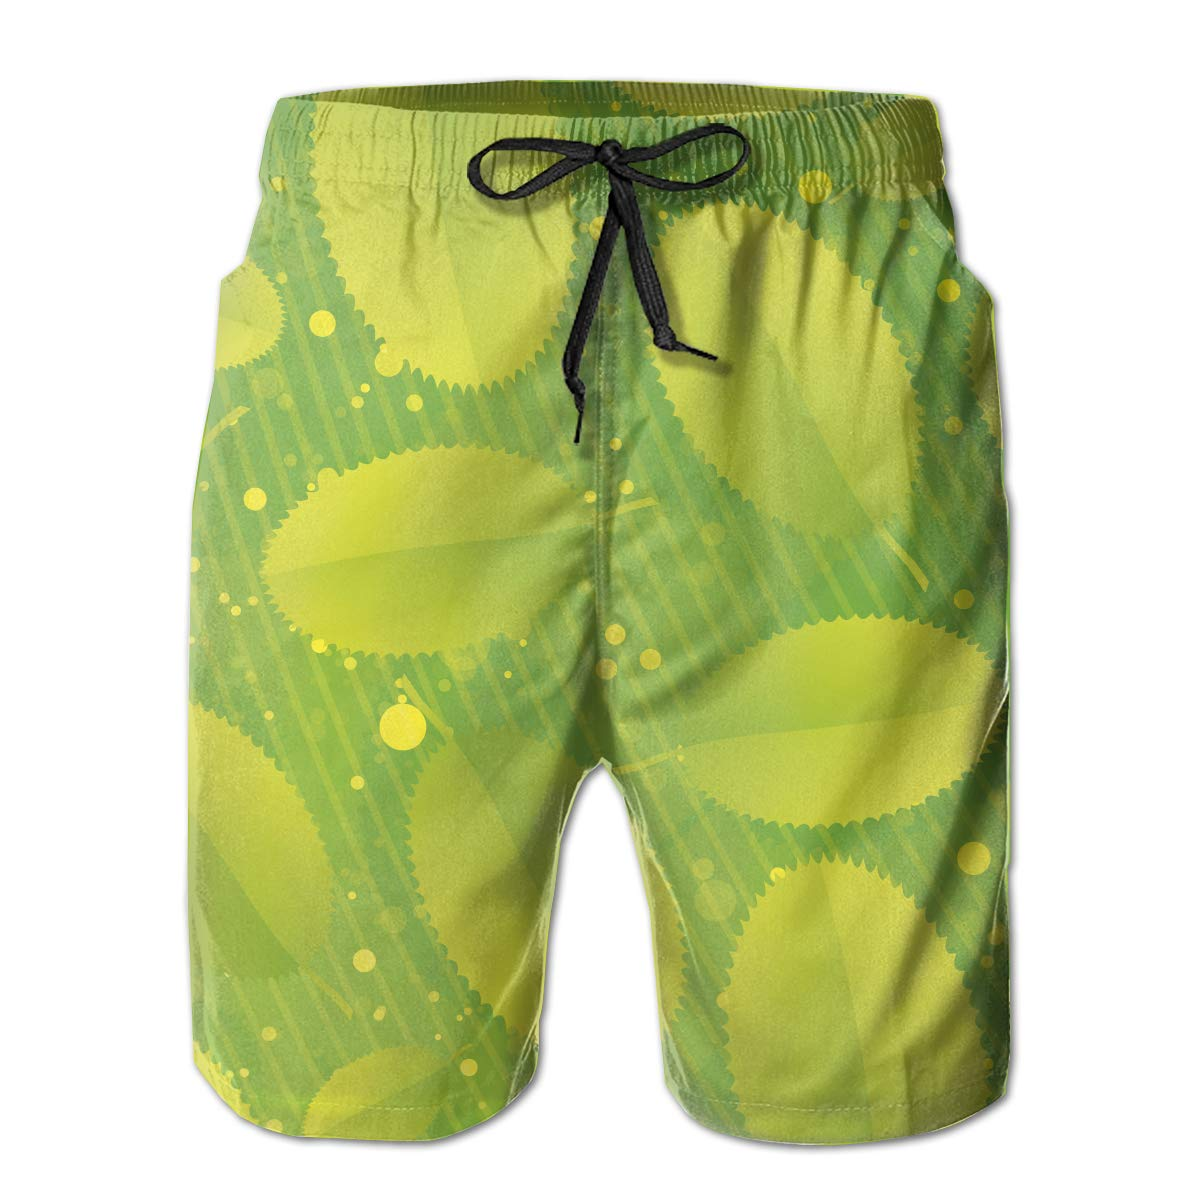 Green Leaves Quick Dry Elastic Lace Boardshorts Beach Shorts Pants Swim Trunks Male Swimsuit with Pockets